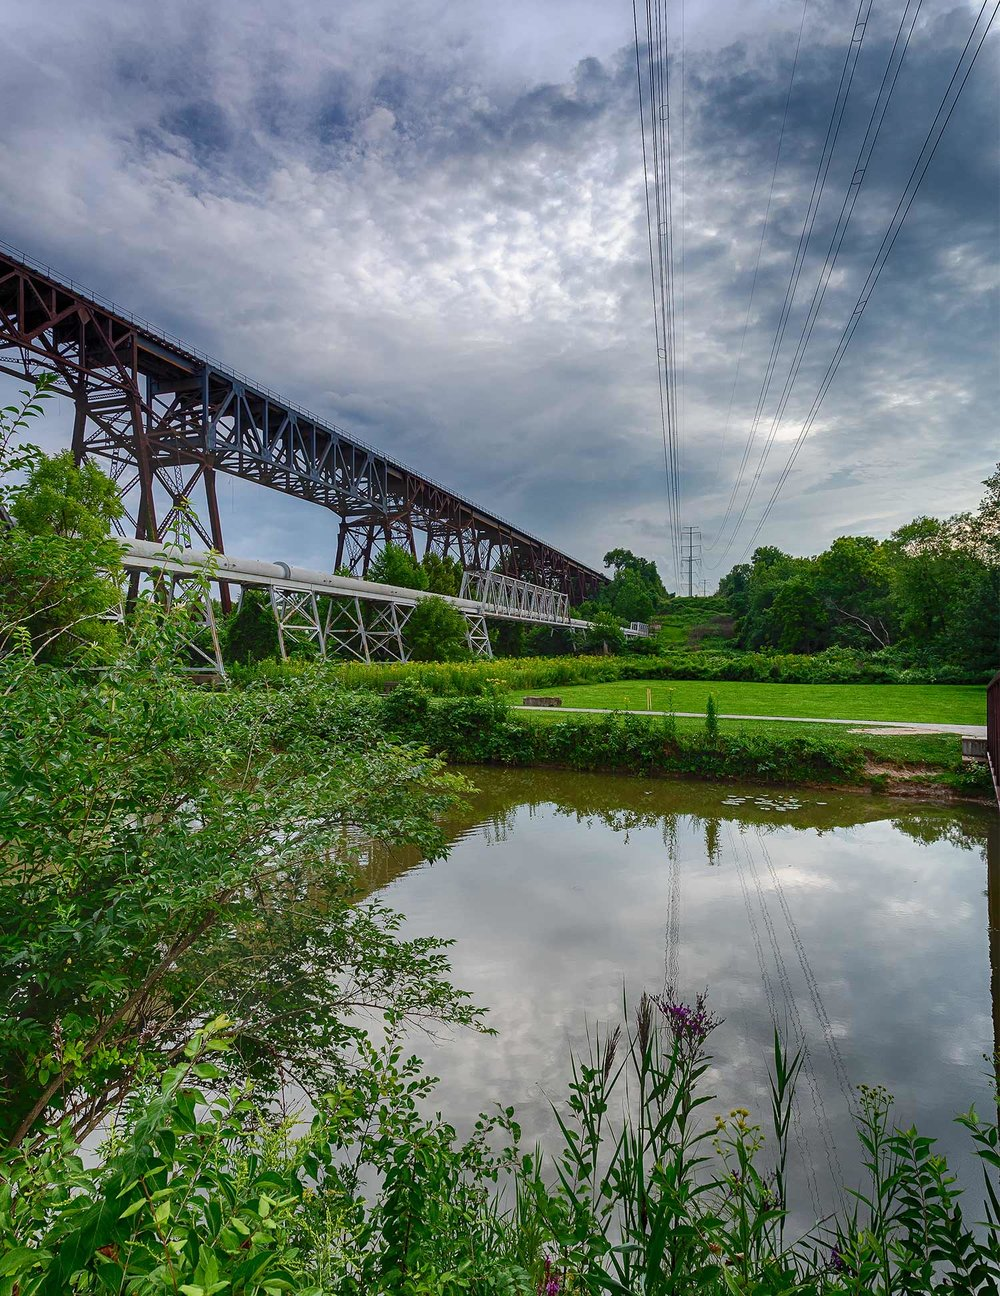 Ohio & Erie Canal Reservation.  The foreground is the Ohio & Erie Canal, on the right is a double circuited transmission line, the pipe on the left is an interceptor pipeline for sewage and on the far is a very active rail road bridge.